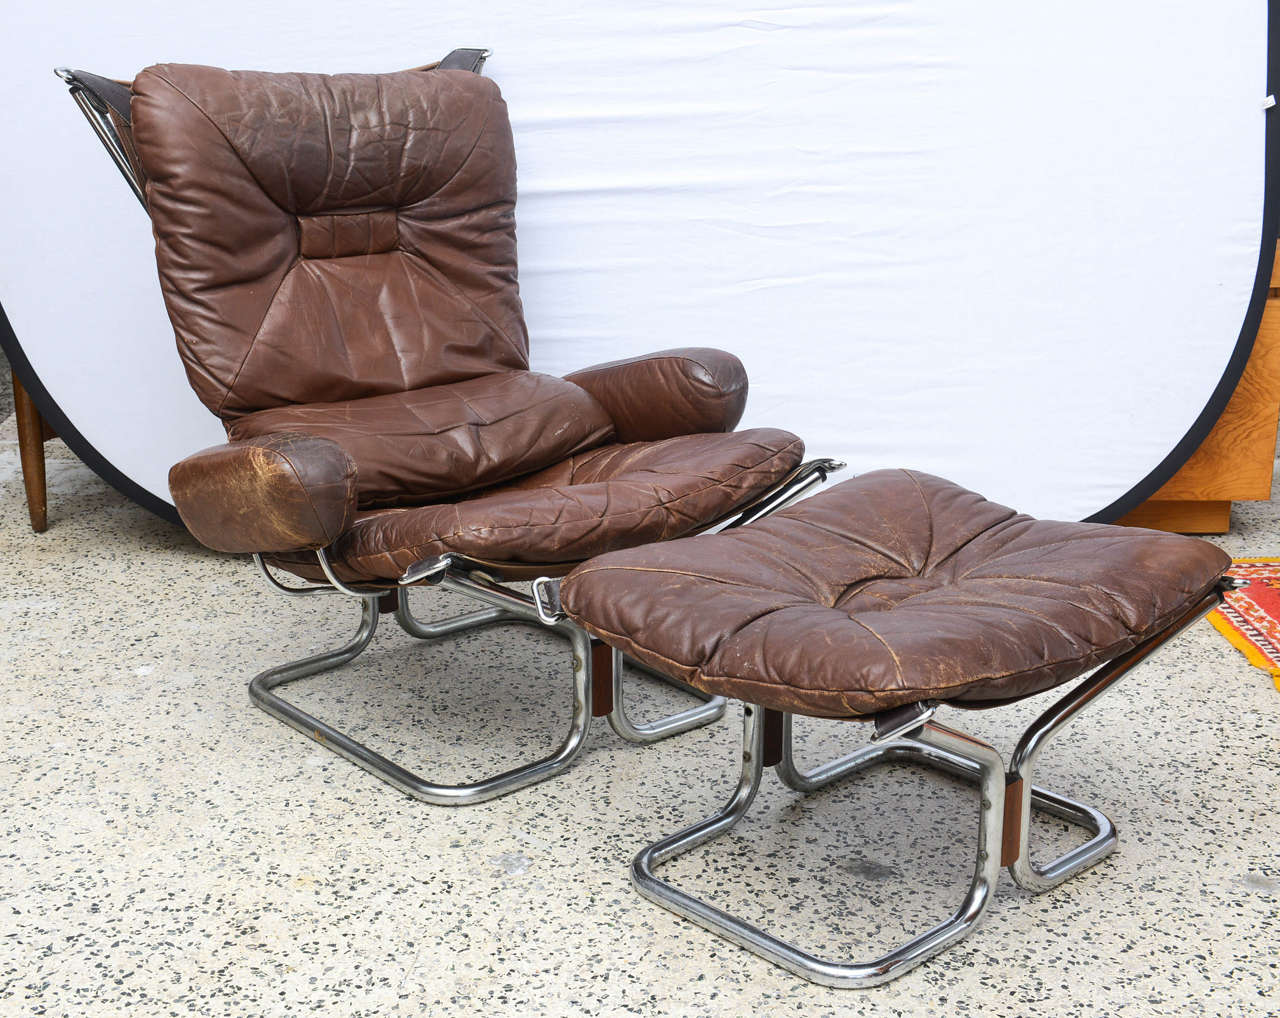 Wonderful vintage MCM chrome and leather with Rosewood accents chair and  ottoman by Ingmar Relling.  Norway 1970s.